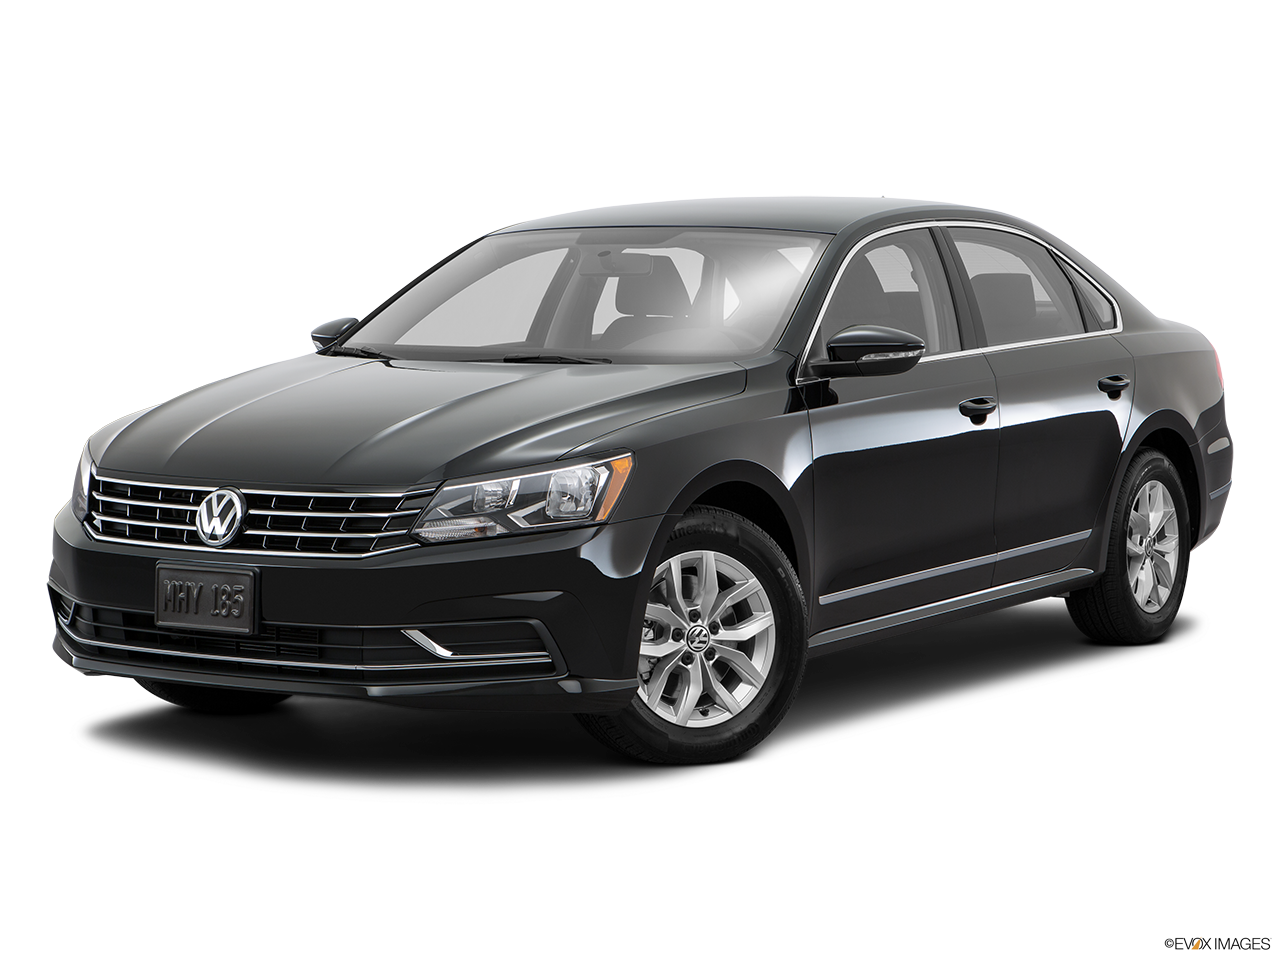 Test Drive A 2016 Volkswagen Passat at Herman Cook Volkswagen in San Diego